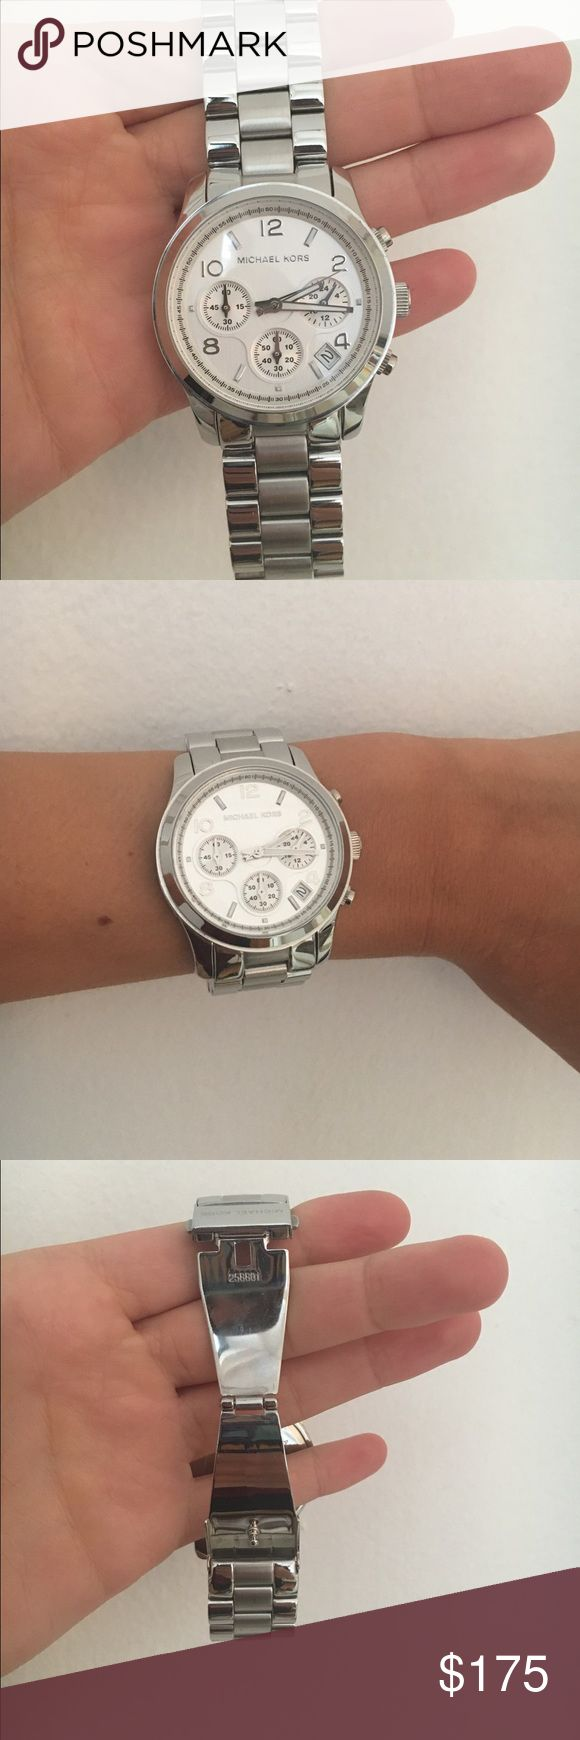 Michael Kors silver watch Michael Kors silver watch. Great condition and barely worn. Michael Kors Accessories Watches